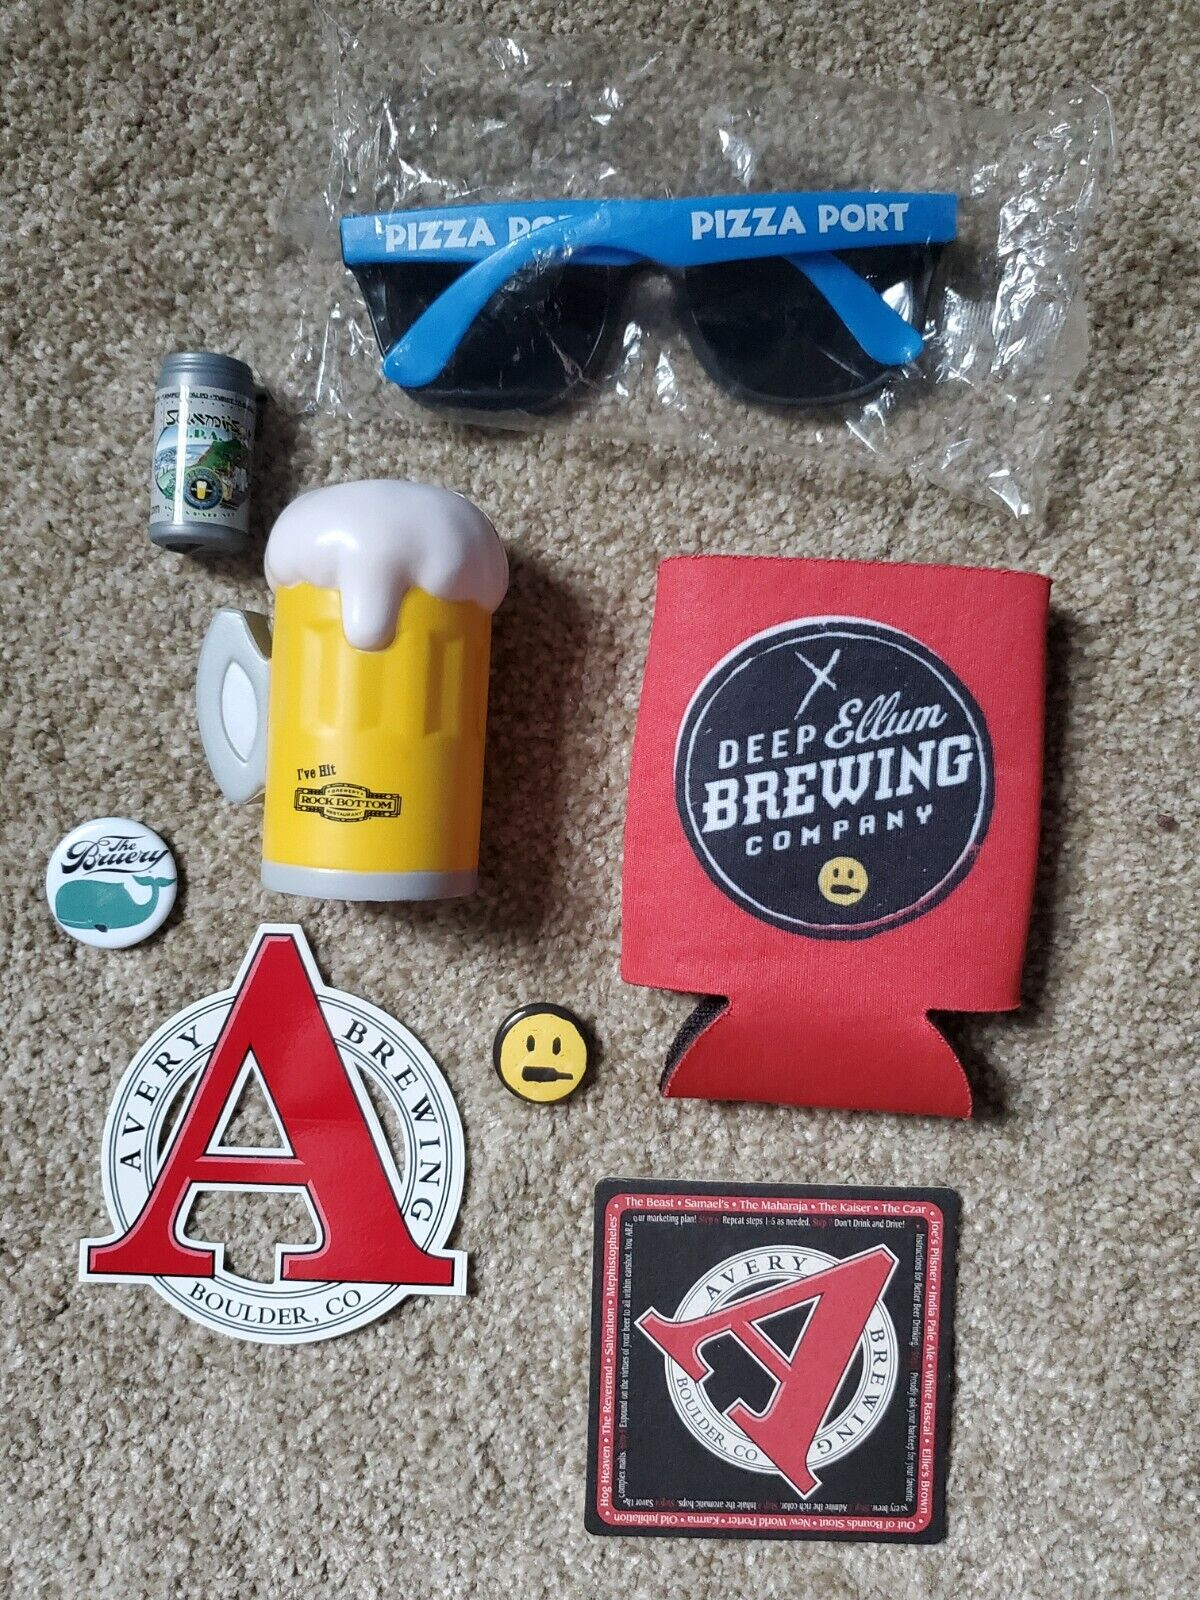 Craft Beer Brewing Swag Pack LOT Avery, Pizza Port, The Bruery, Deep Ellum MORE - $8.95